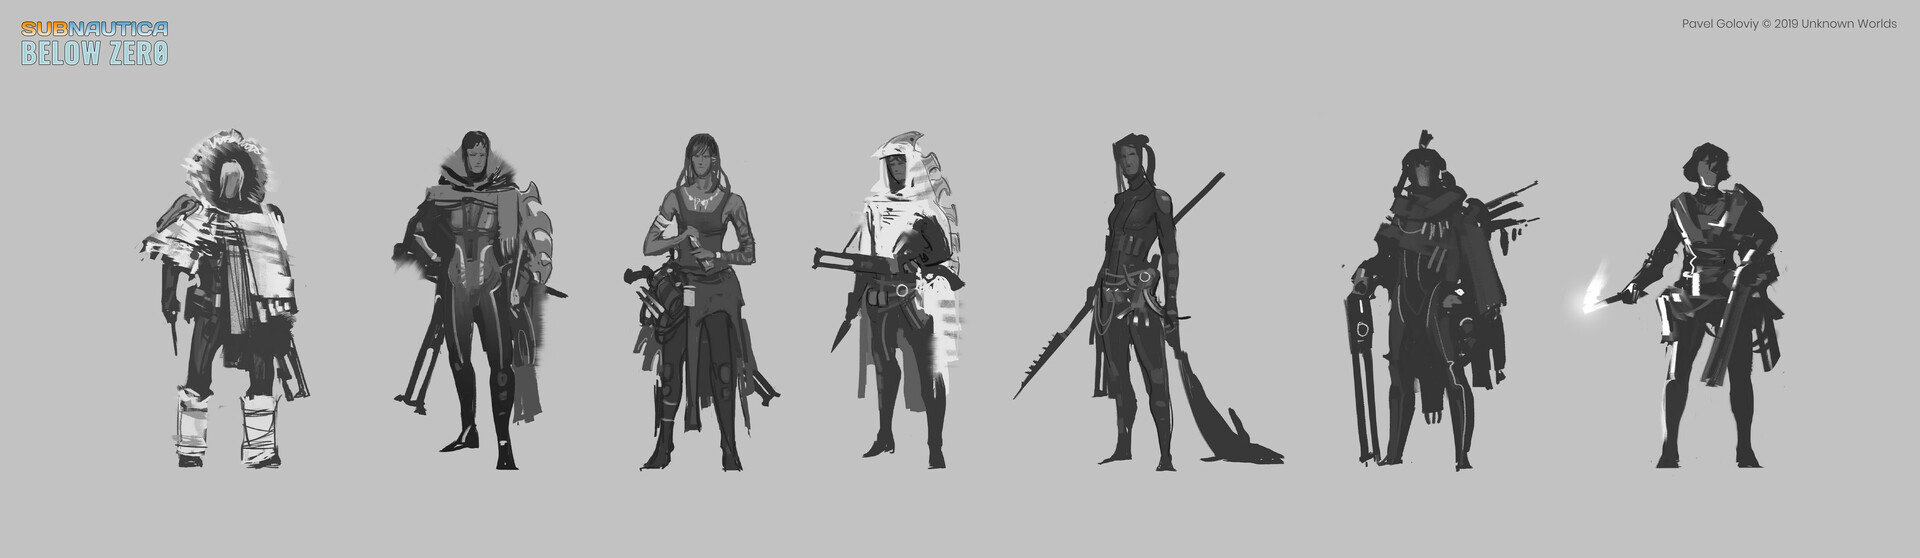 Preliminary sketches for Marguerite character.